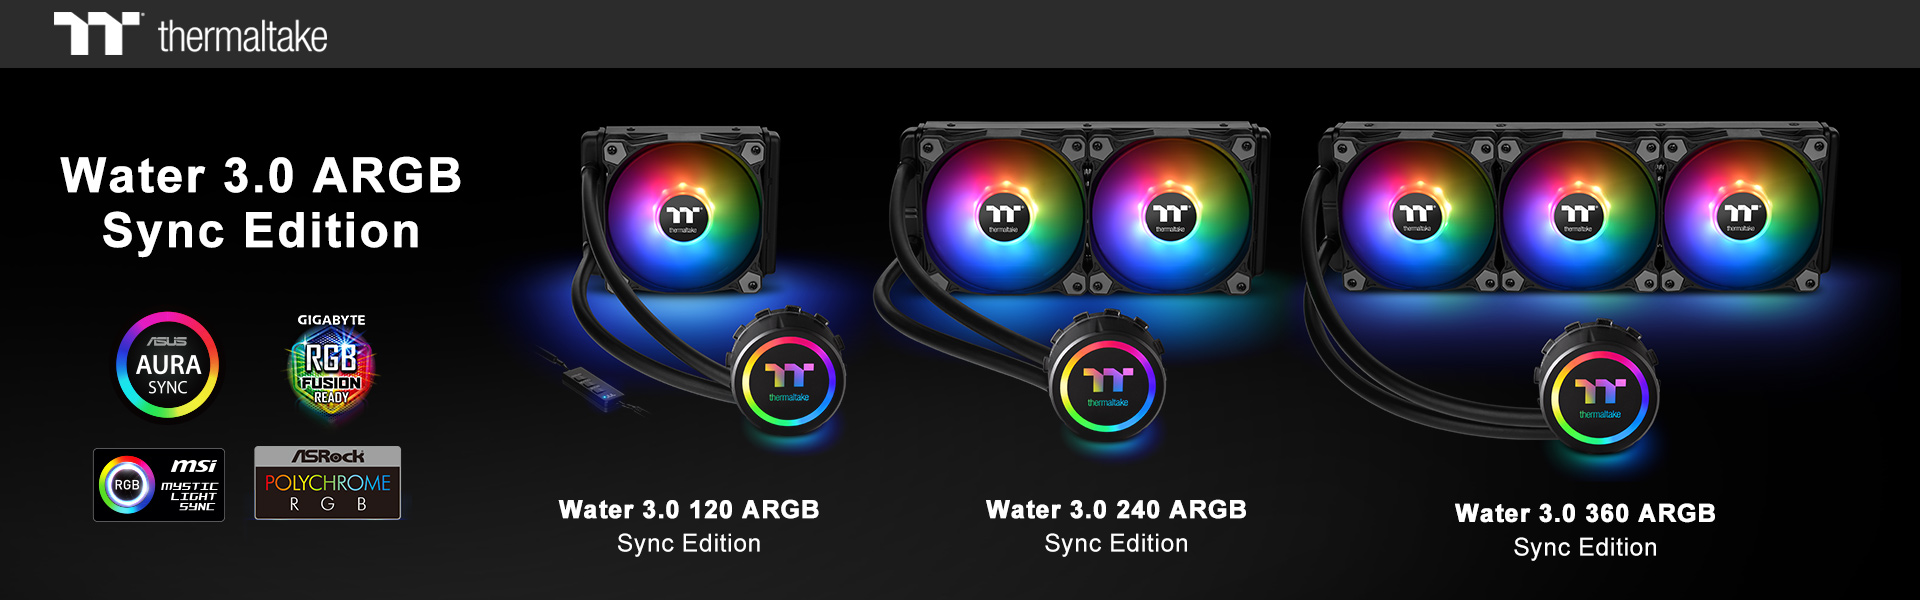 Thermaltake New All-In-One Liquid Cooling Solution The Water